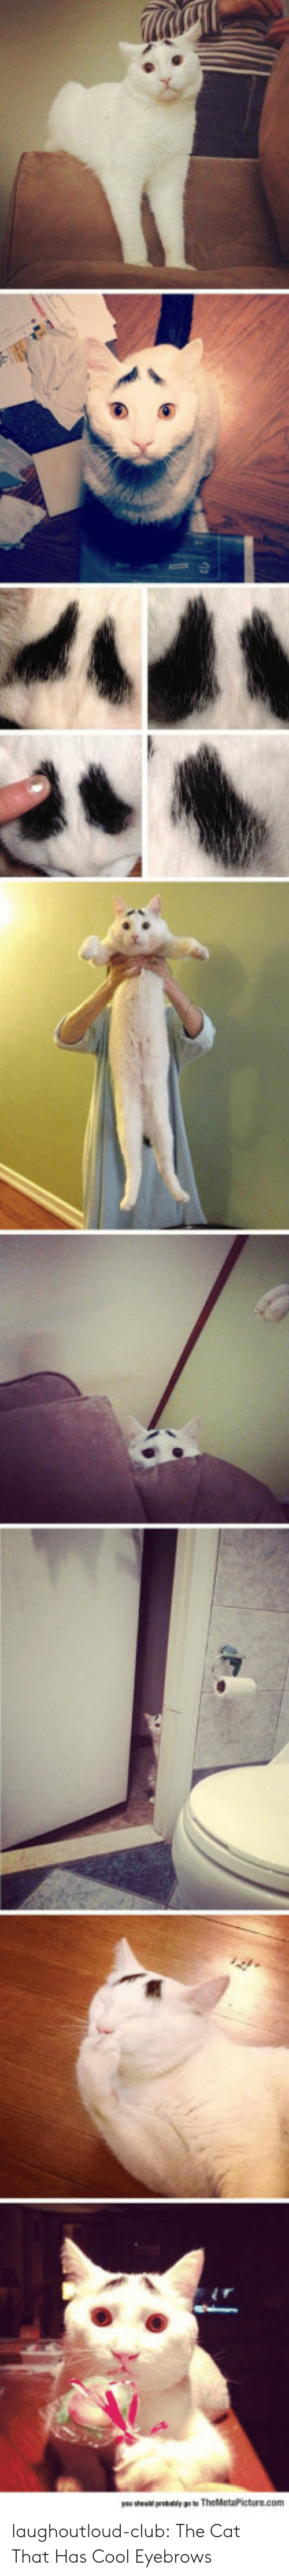 eyebrows: laughoutloud-club:  The Cat That Has Cool Eyebrows